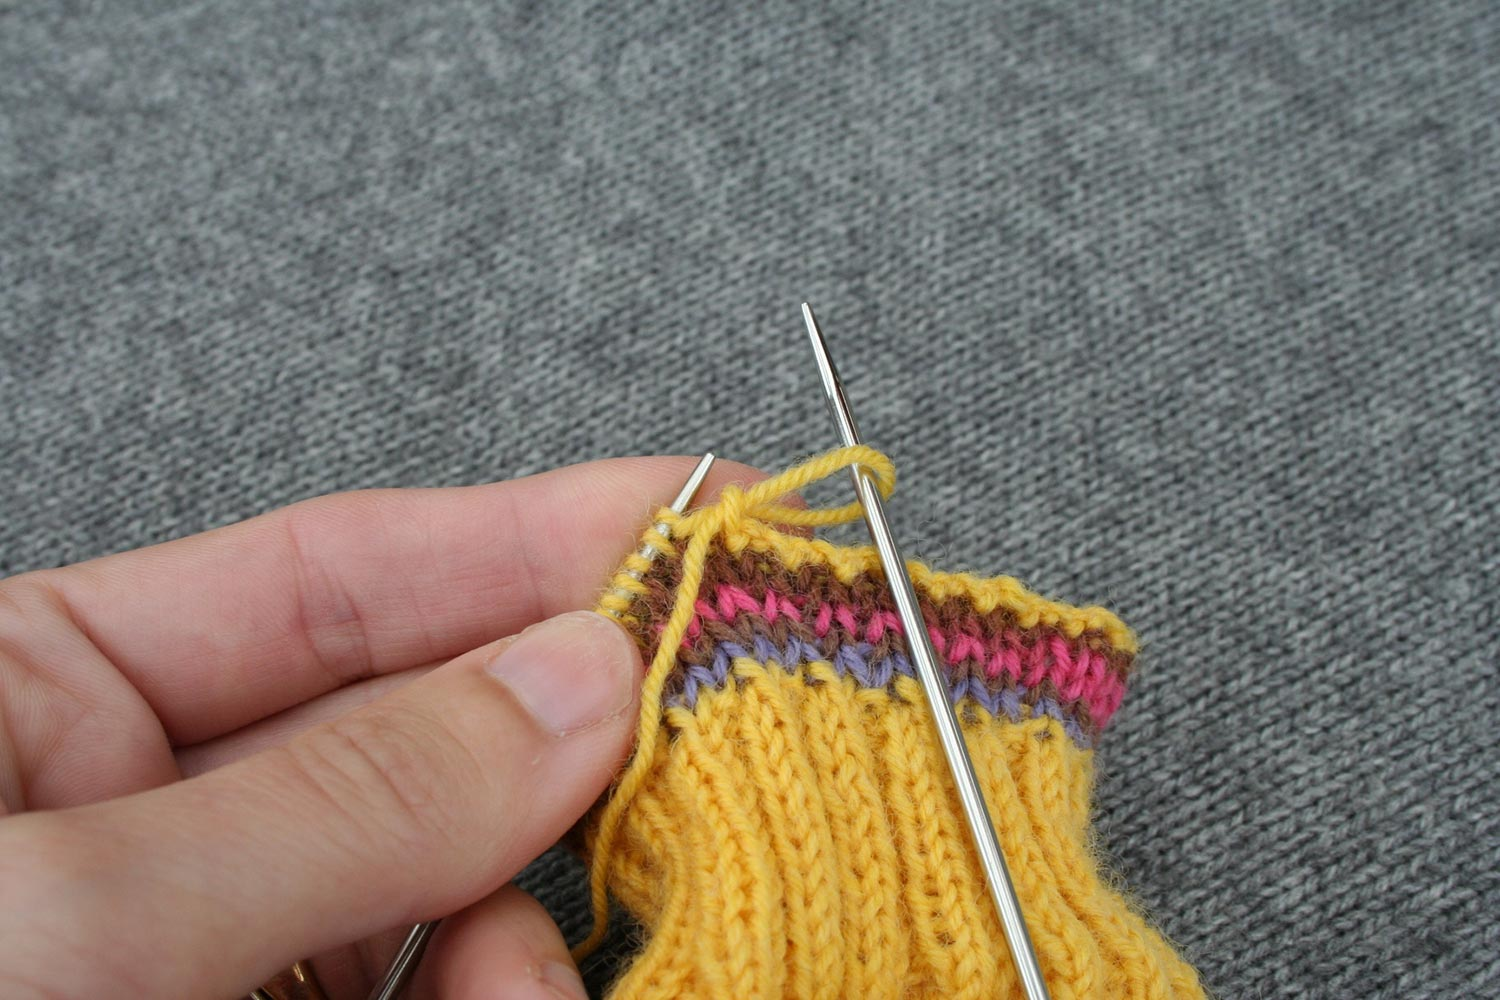 Needle pulling on the only stitch on right needle to enlarge it and pull the tail through.